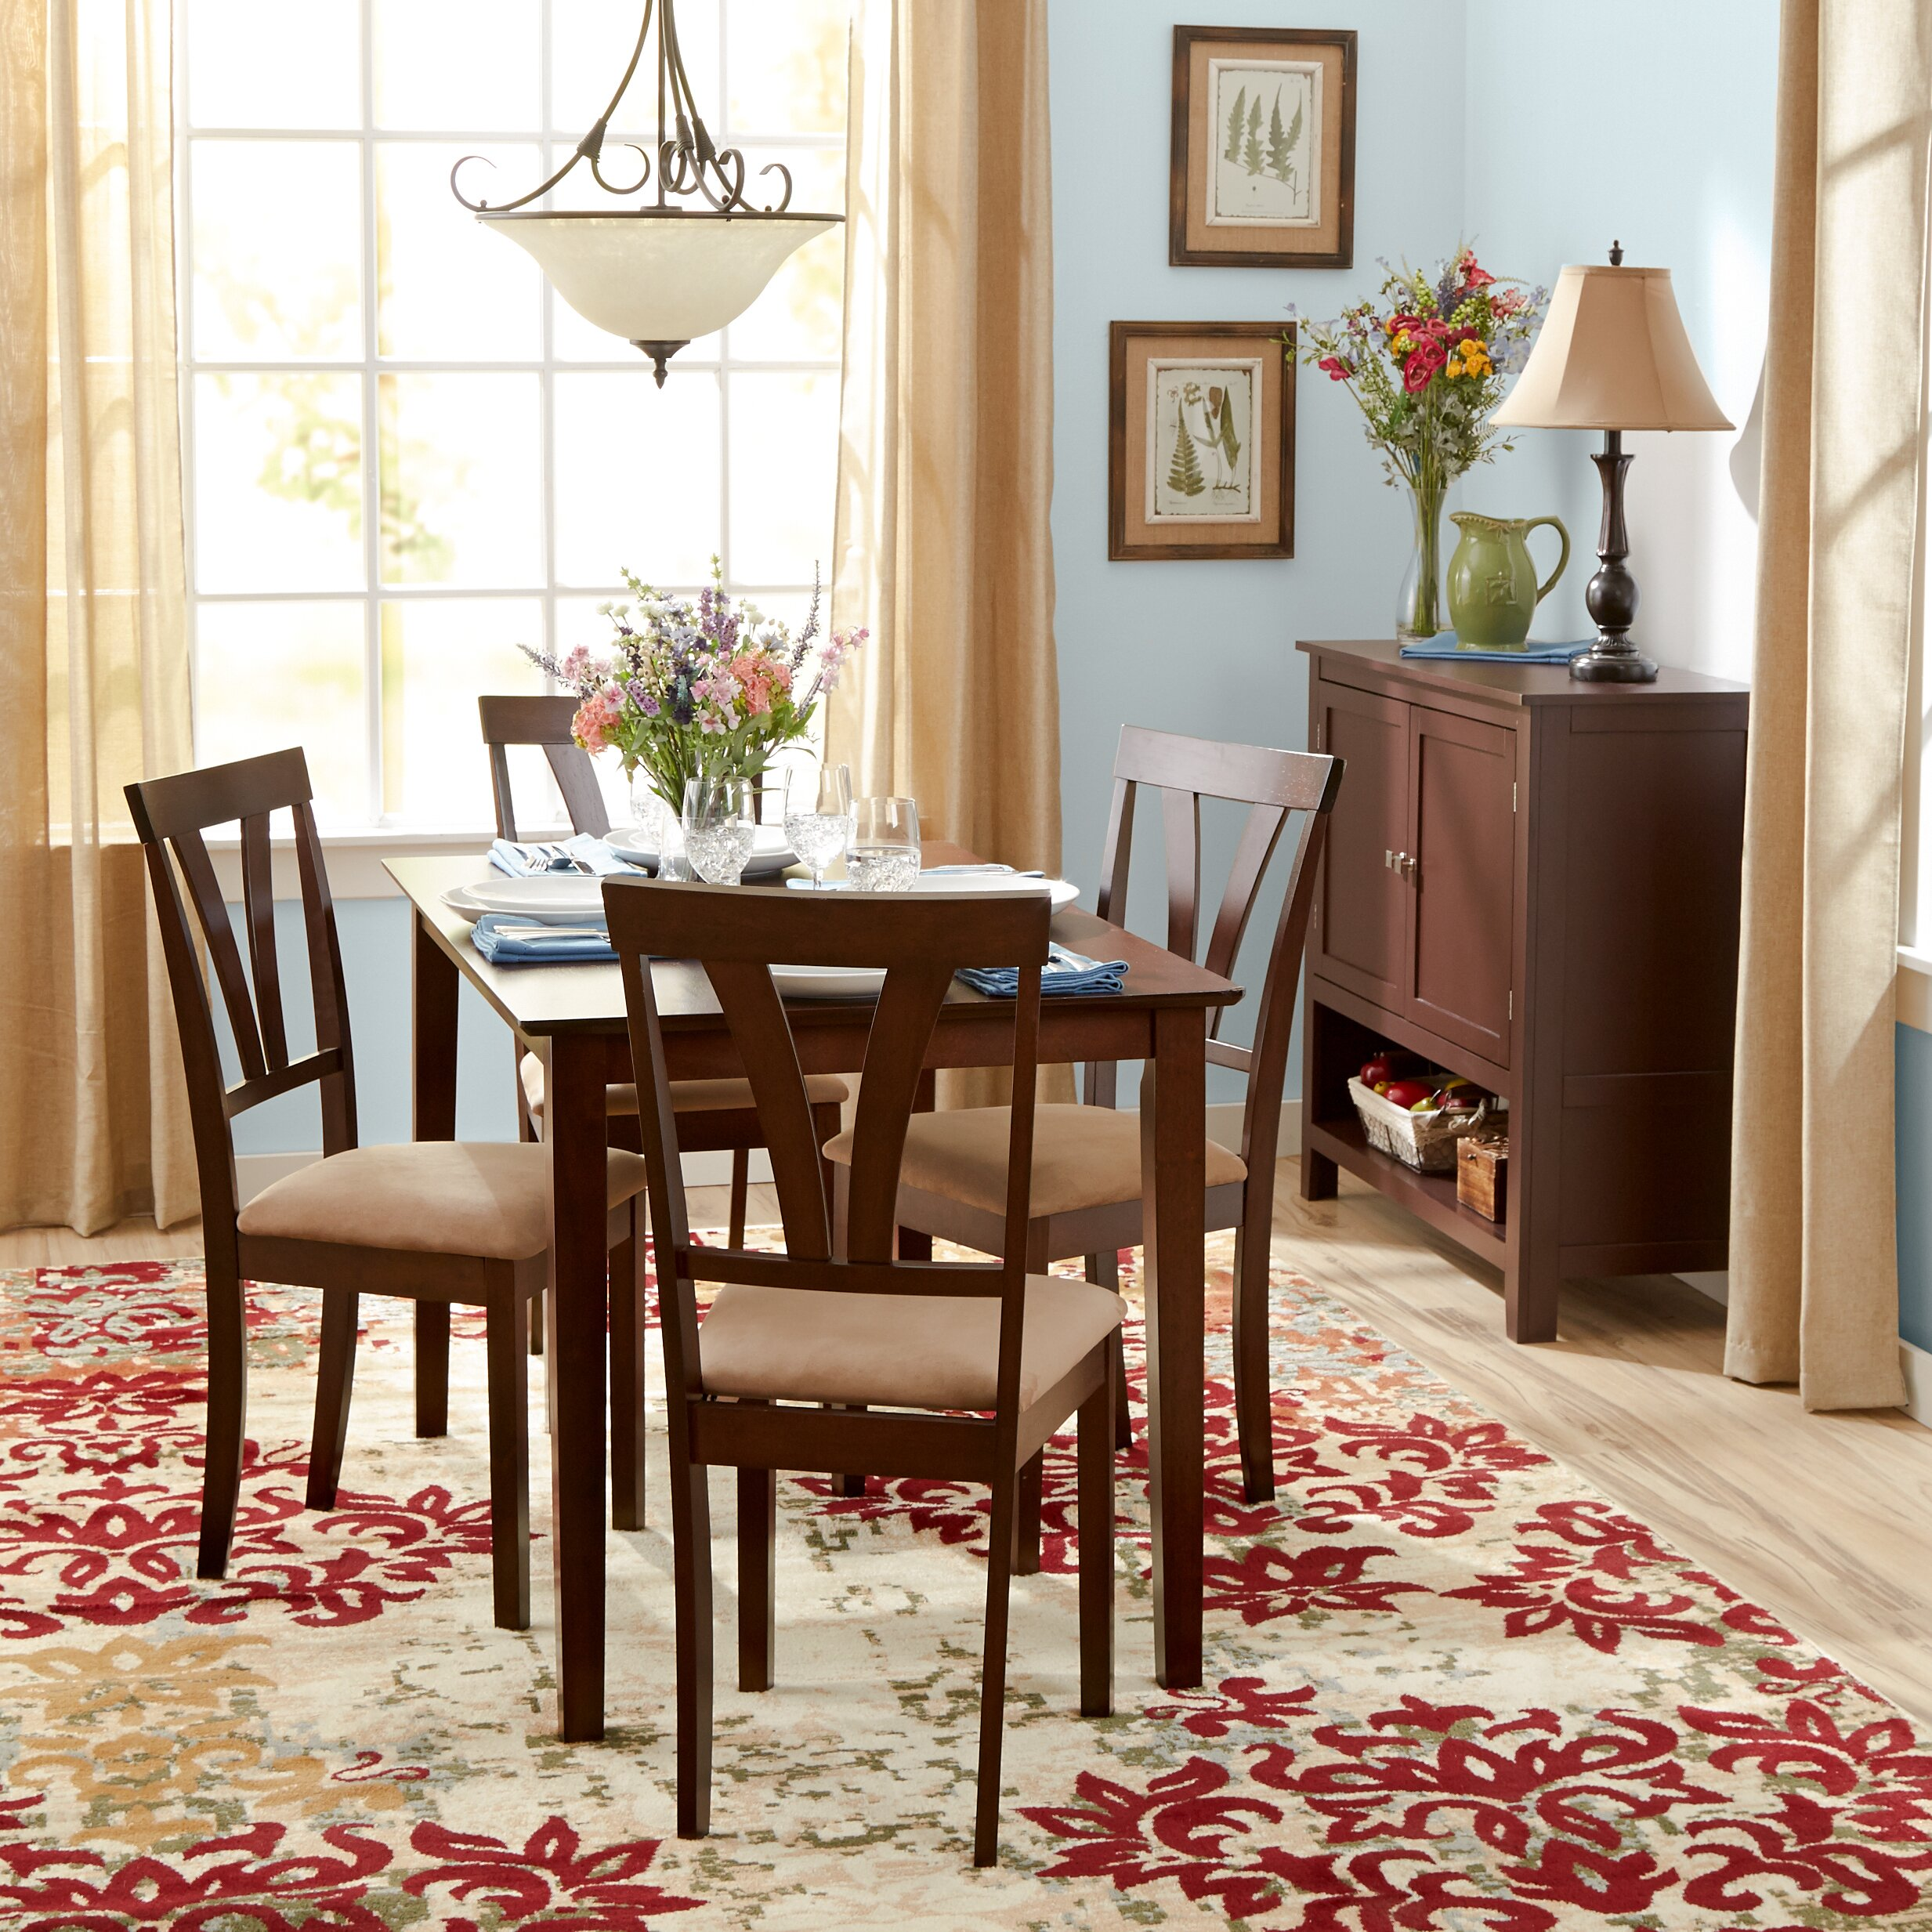 Andover mills donald 5 piece dining set reviews wayfair for 5 piece dining set